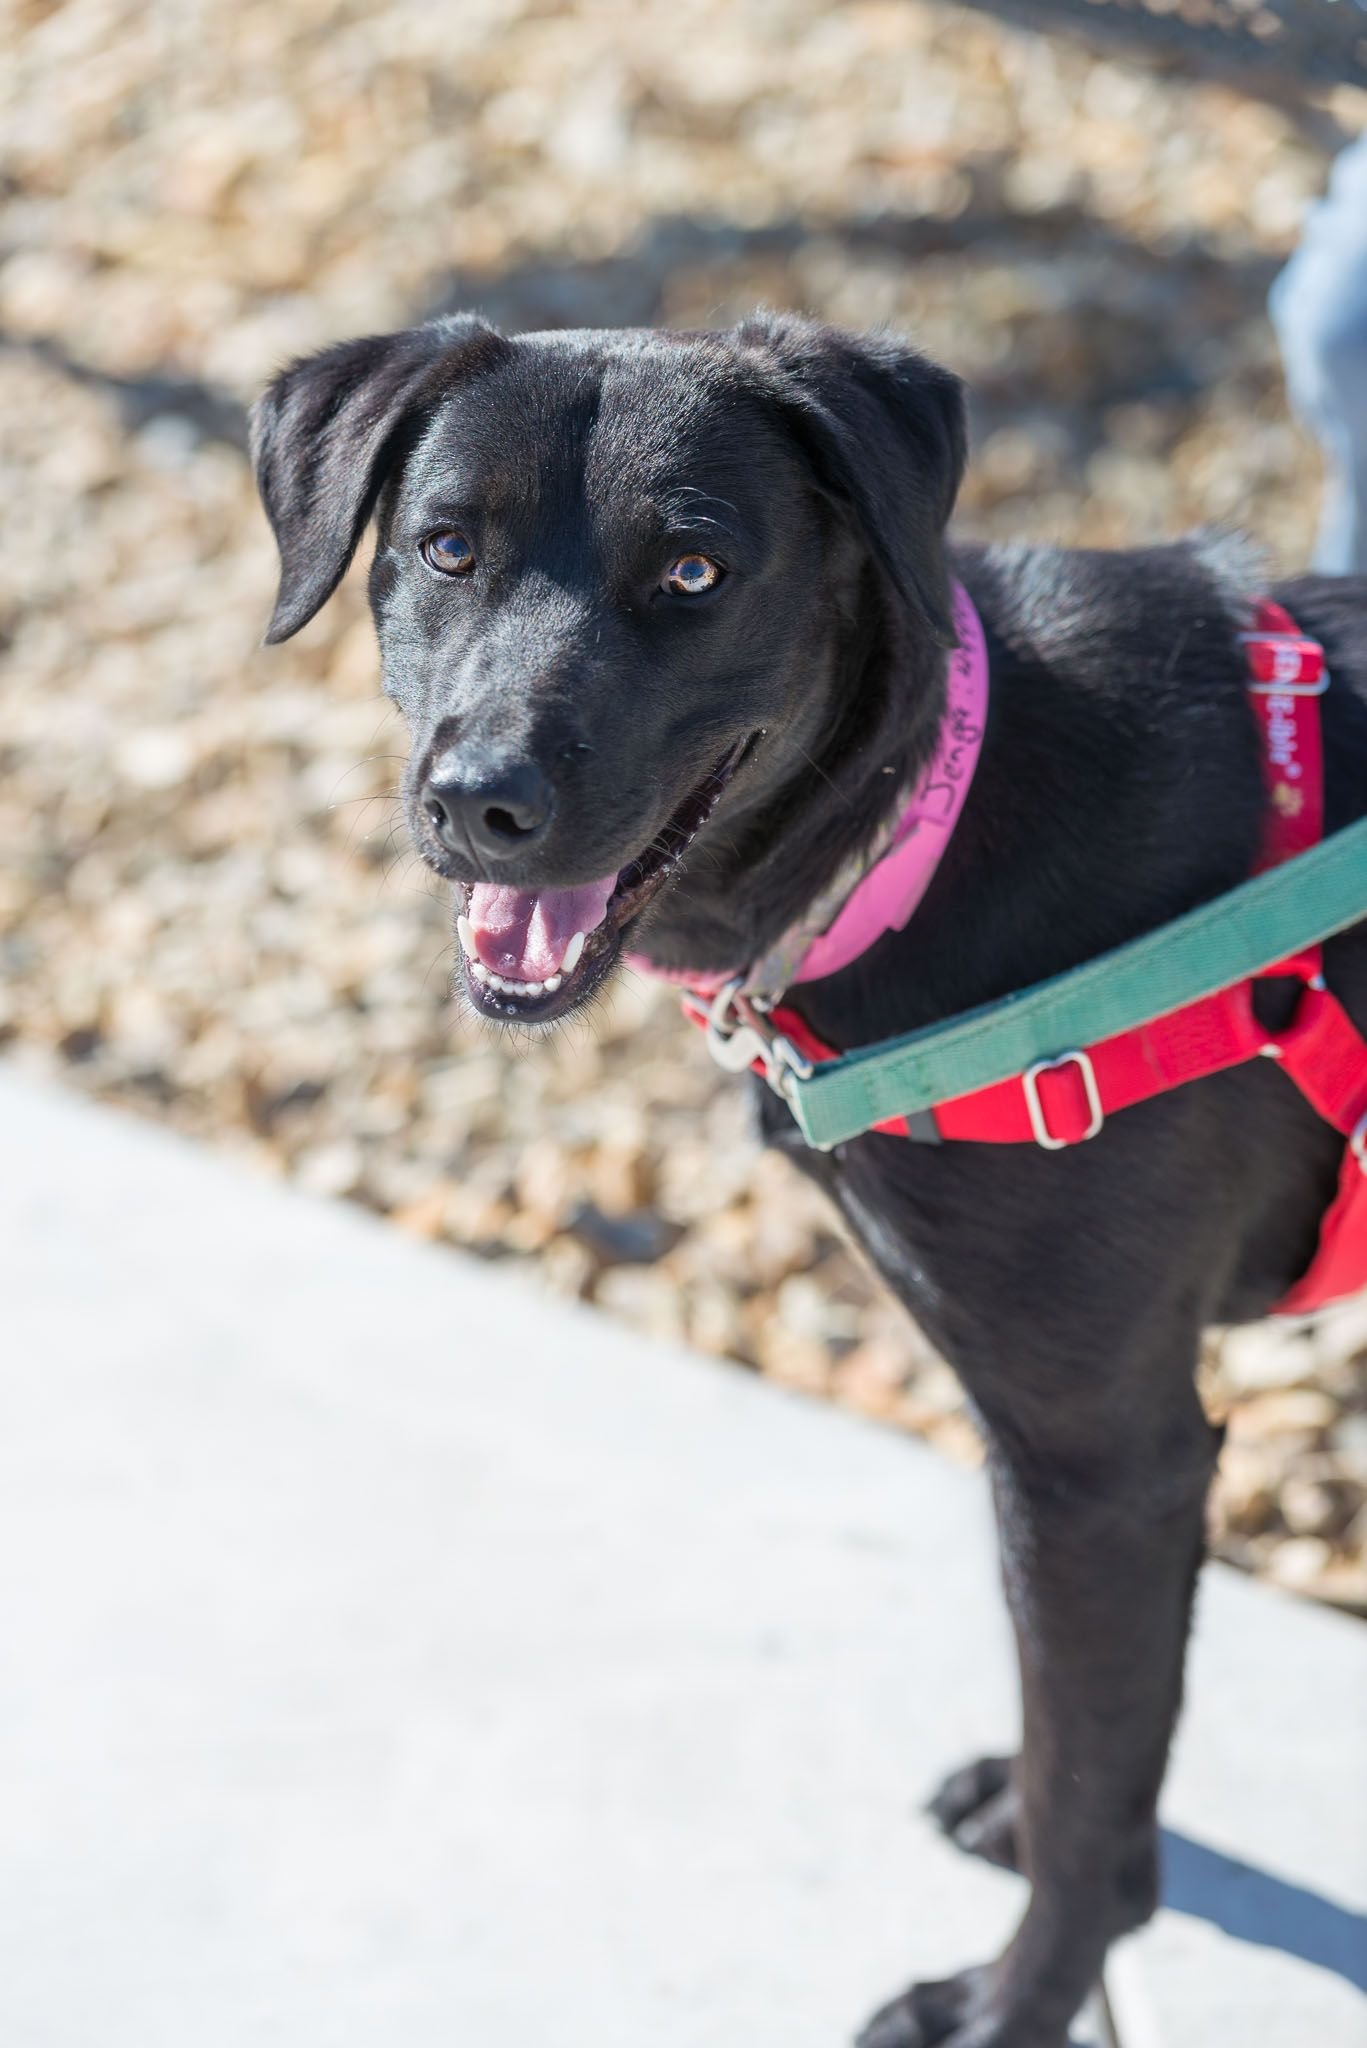 Jenga, a one year old Labrador Retriever, is an active and